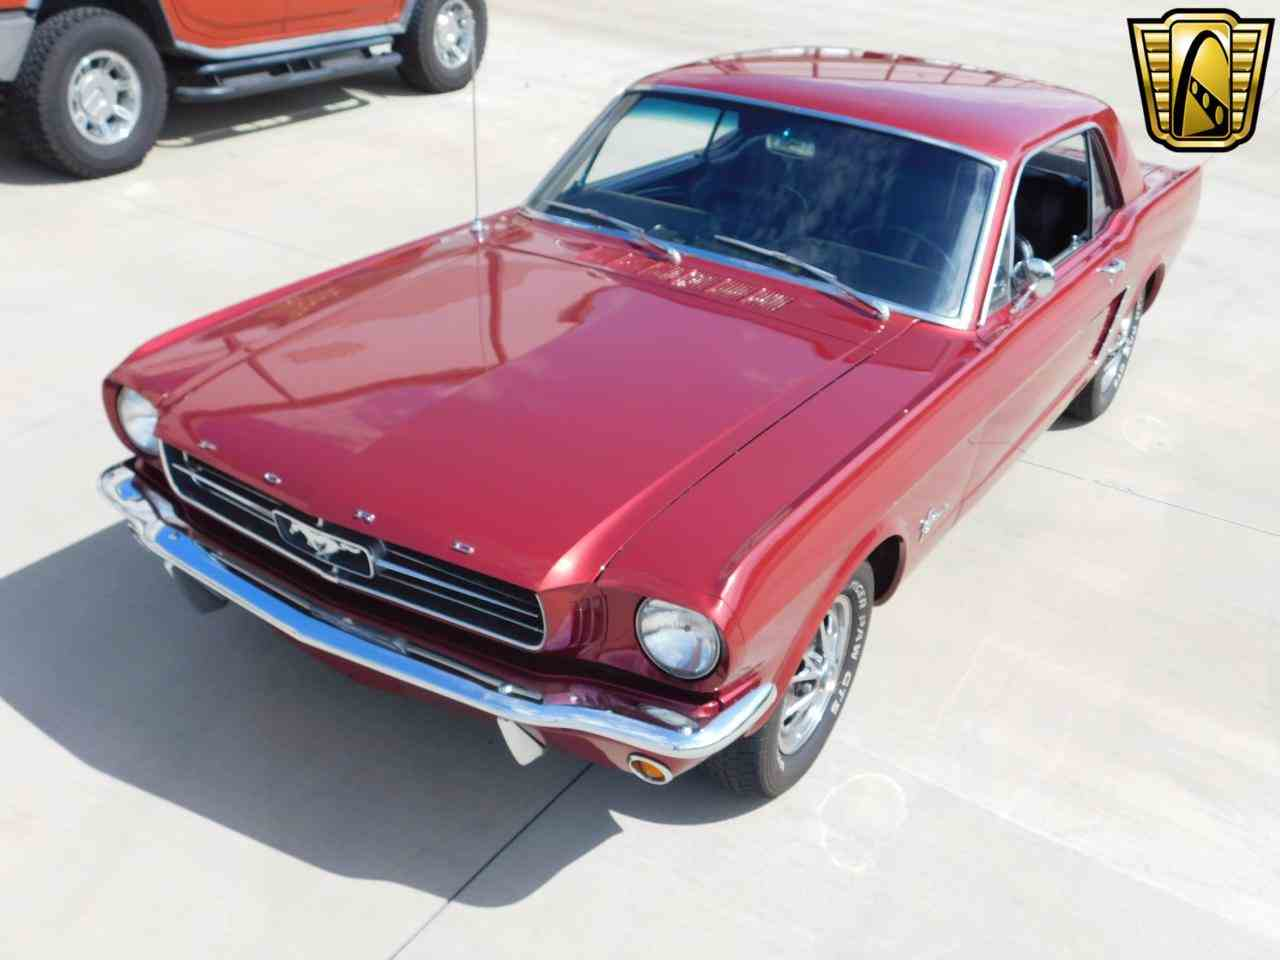 Large Picture of '65 Ford Mustang located in Georgia - $14,595.00 Offered by Gateway Classic Cars - Atlanta - LDV0